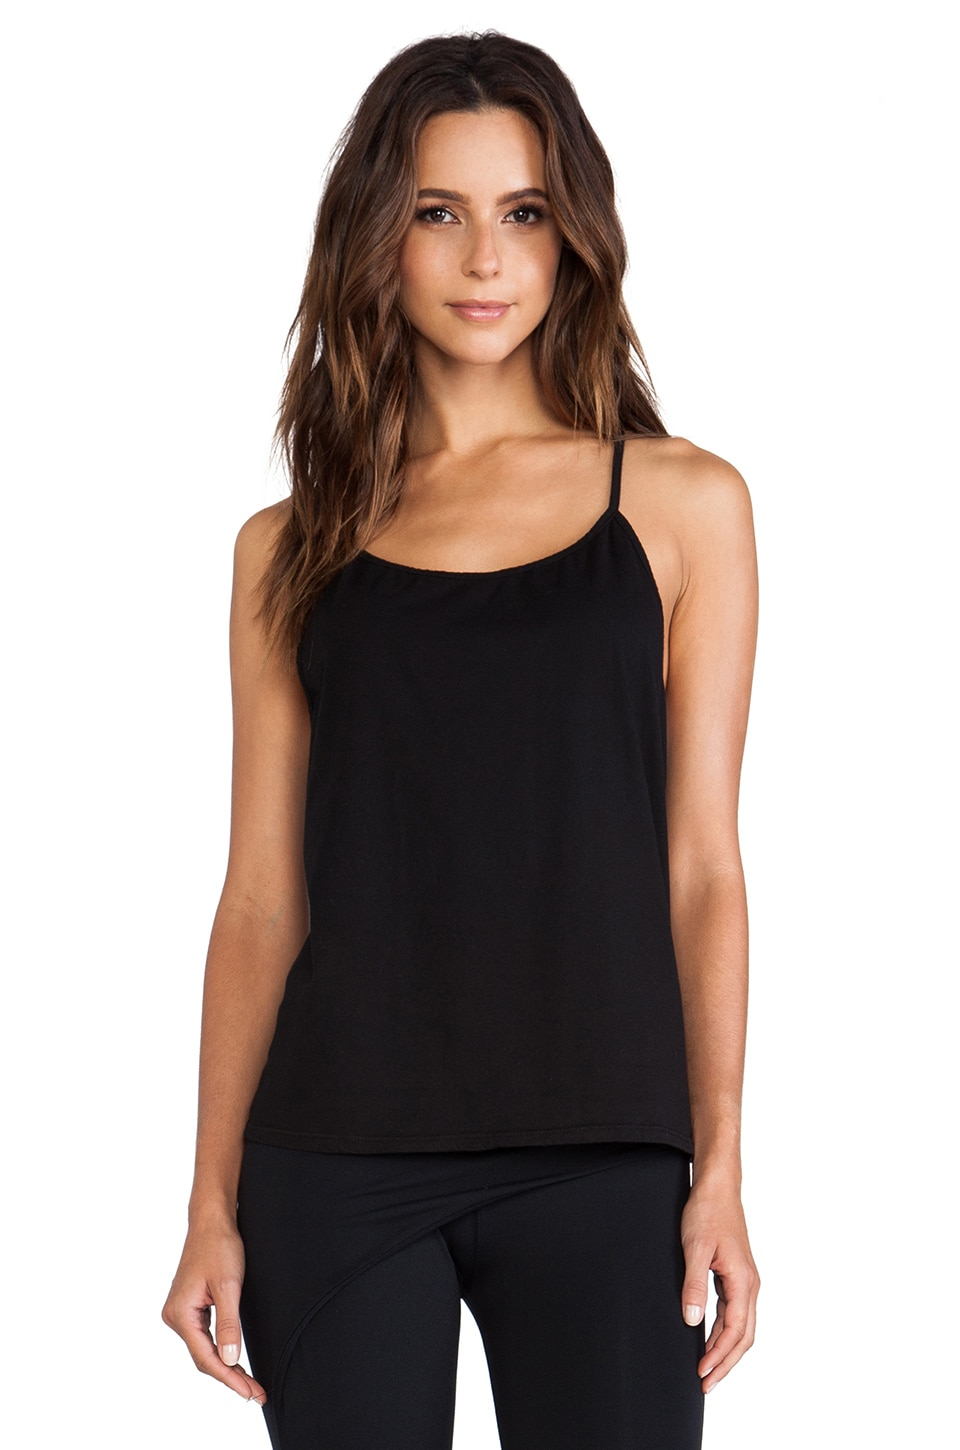 SOLOW So Low A-Line Racerback Tank in Black